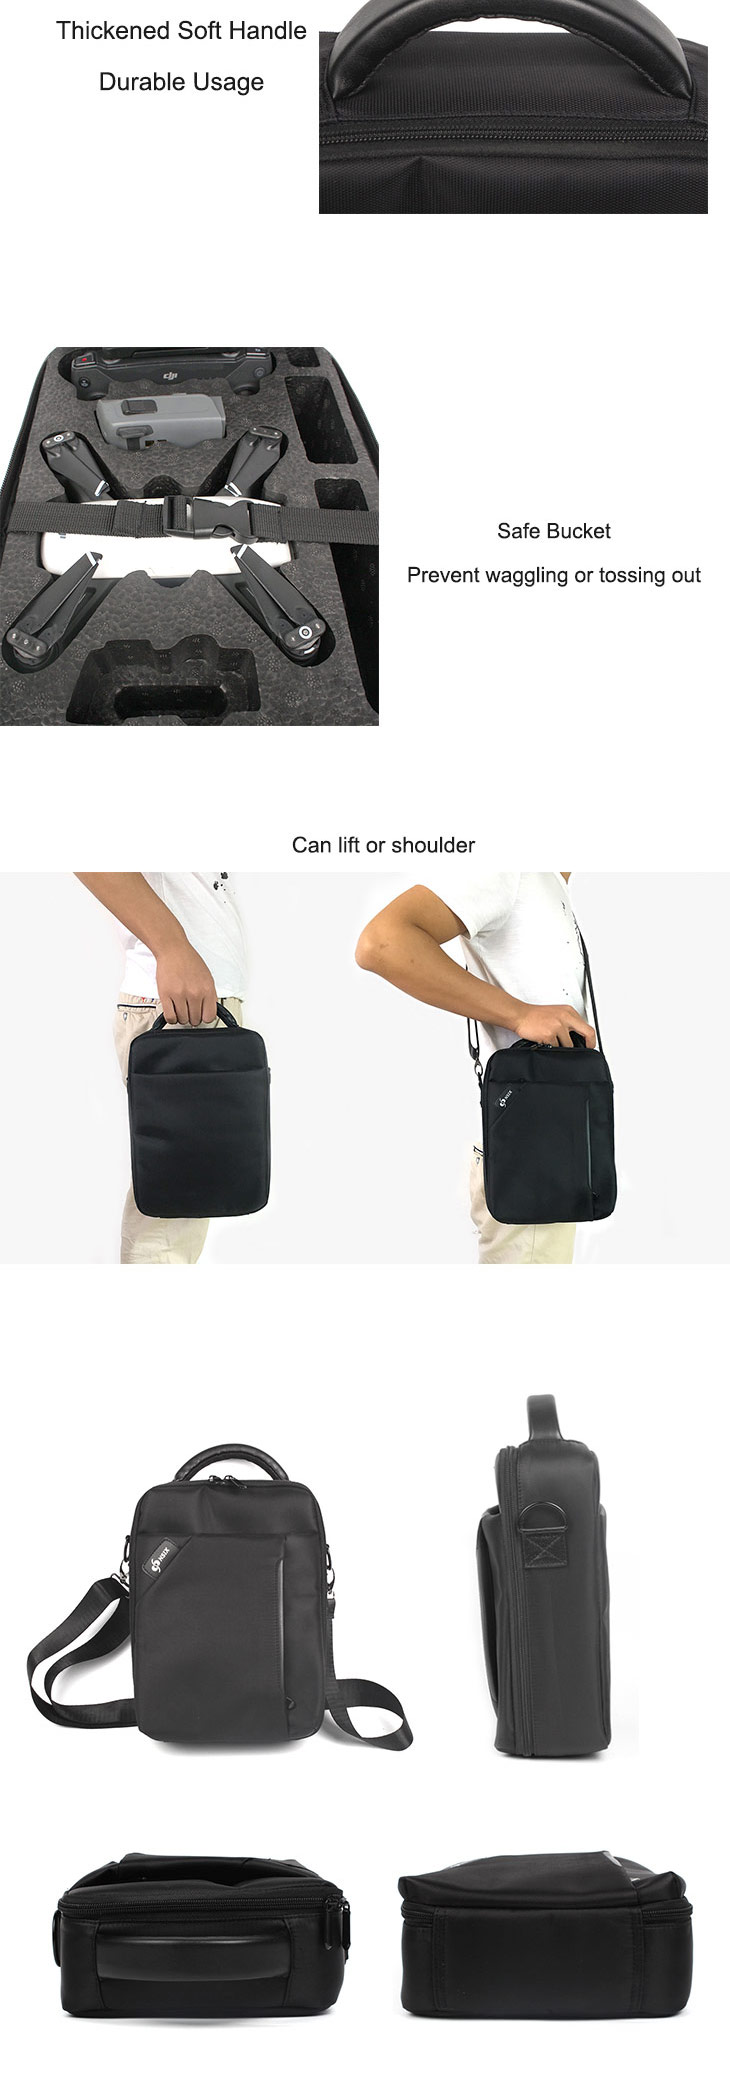 Hand Bag Shoulder Bag with Strap Waterproof Scratchproof EPP Lining for DJI SPARK Aircraft & Remote Controller